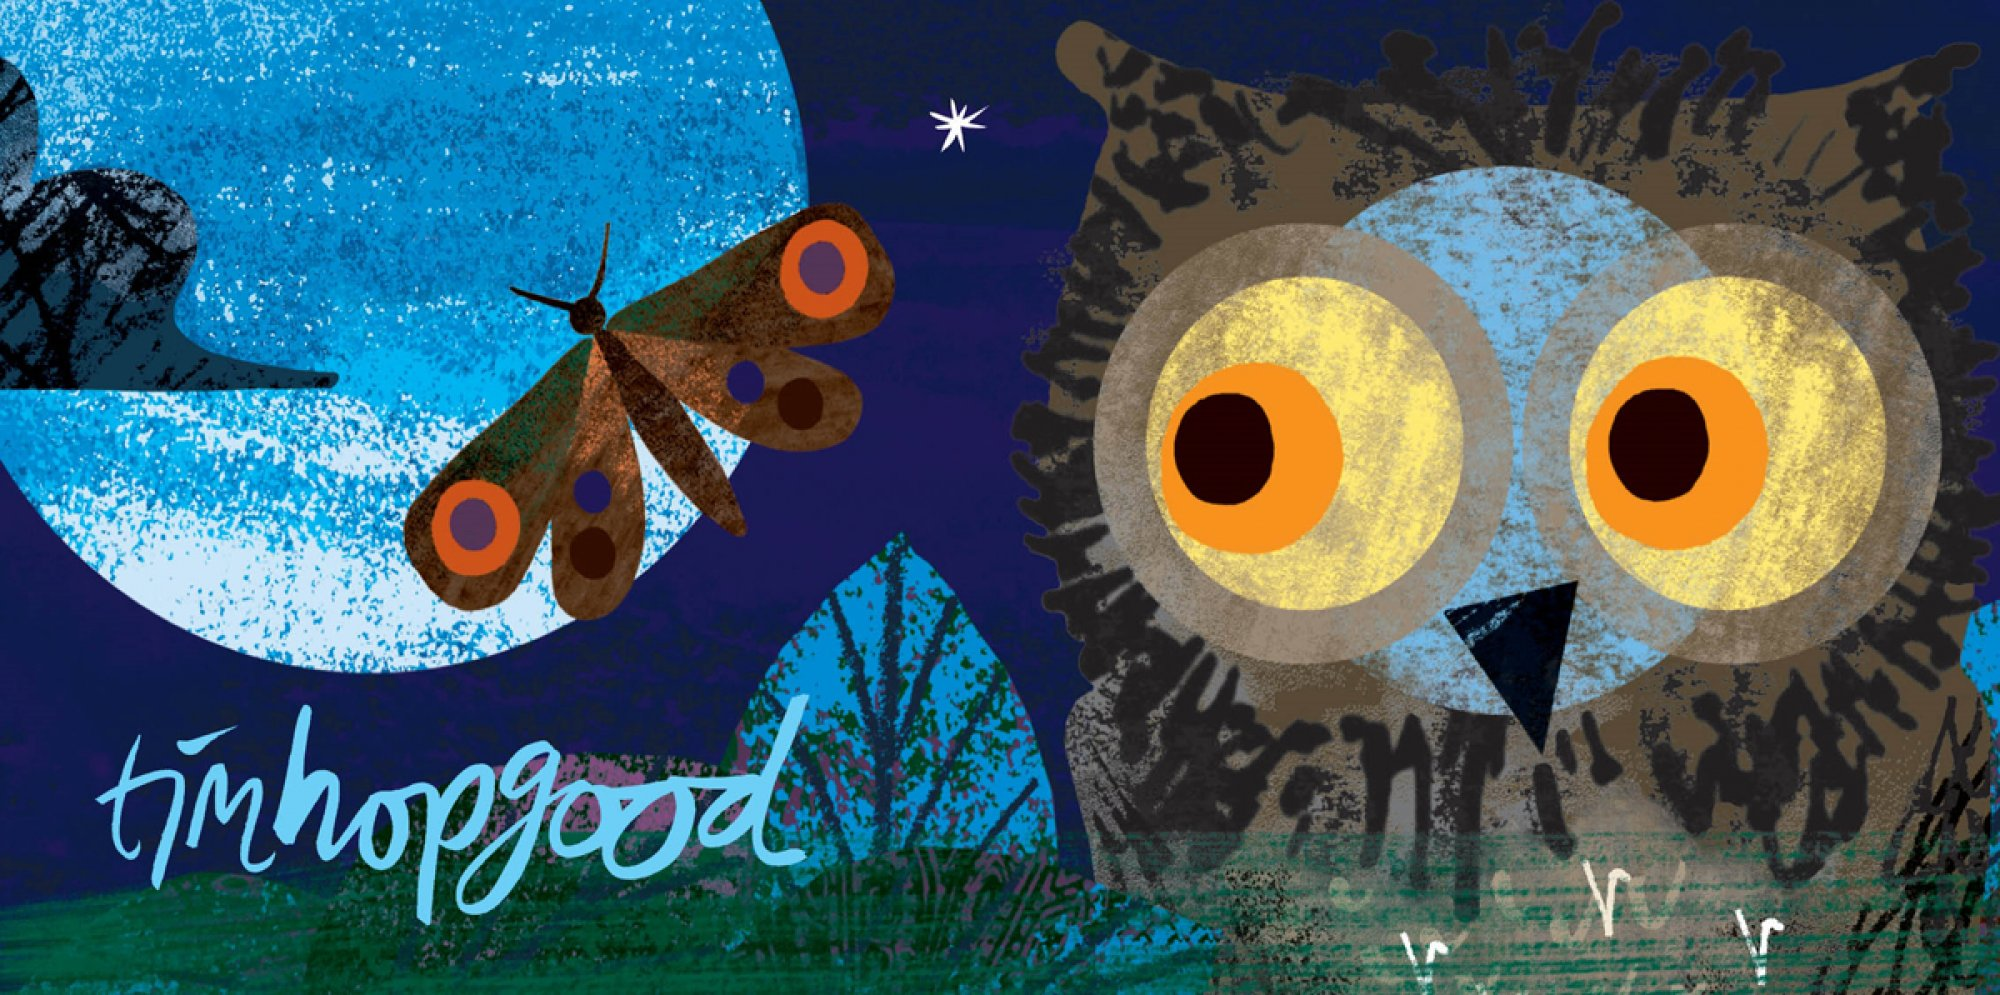 an illustration of an owl with big yellow eyes sitting in a night-time scene